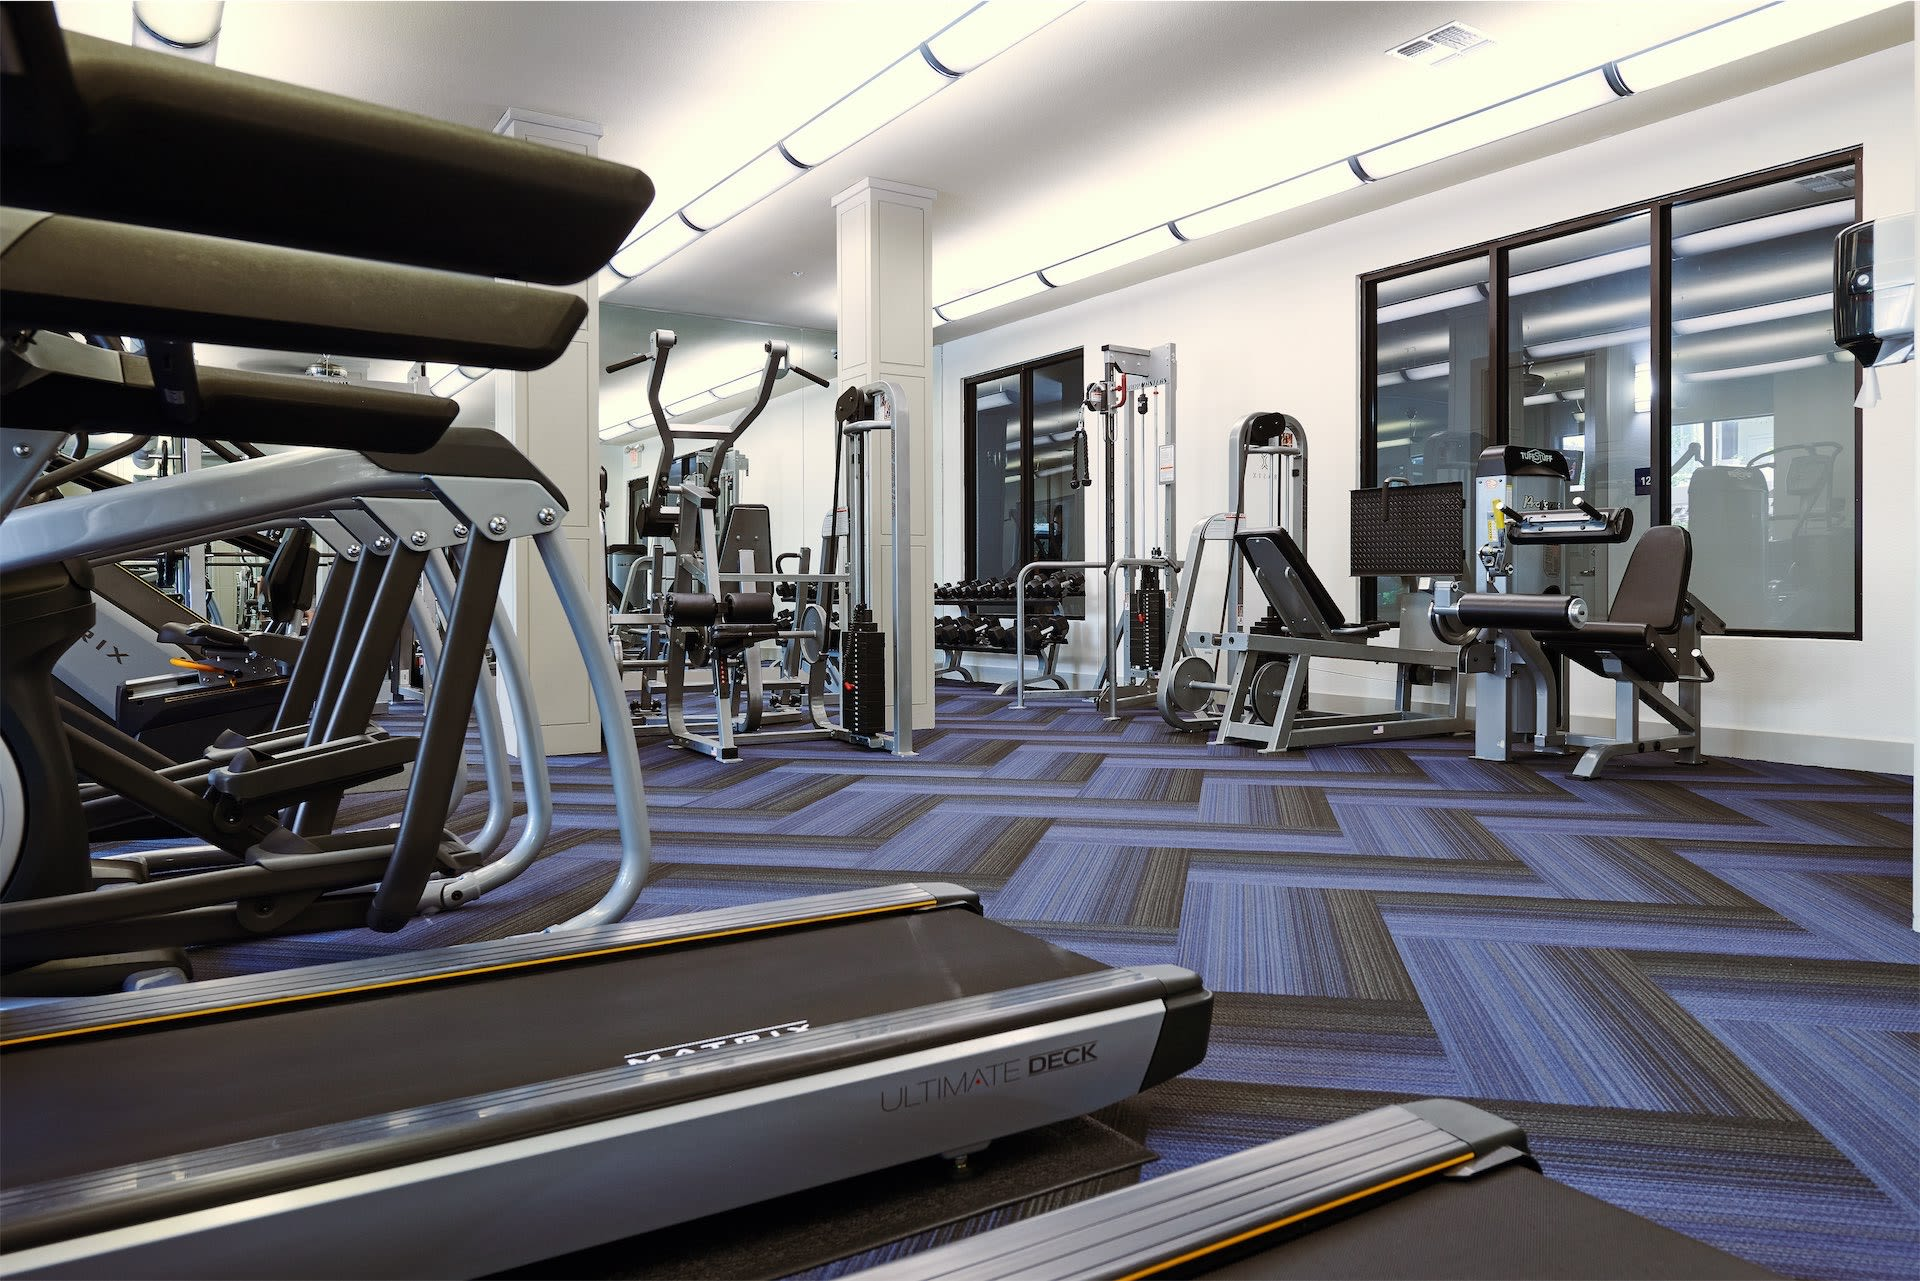 Treadmill close-up with carpeted gym at Seville Uptown in Dallas, Texas